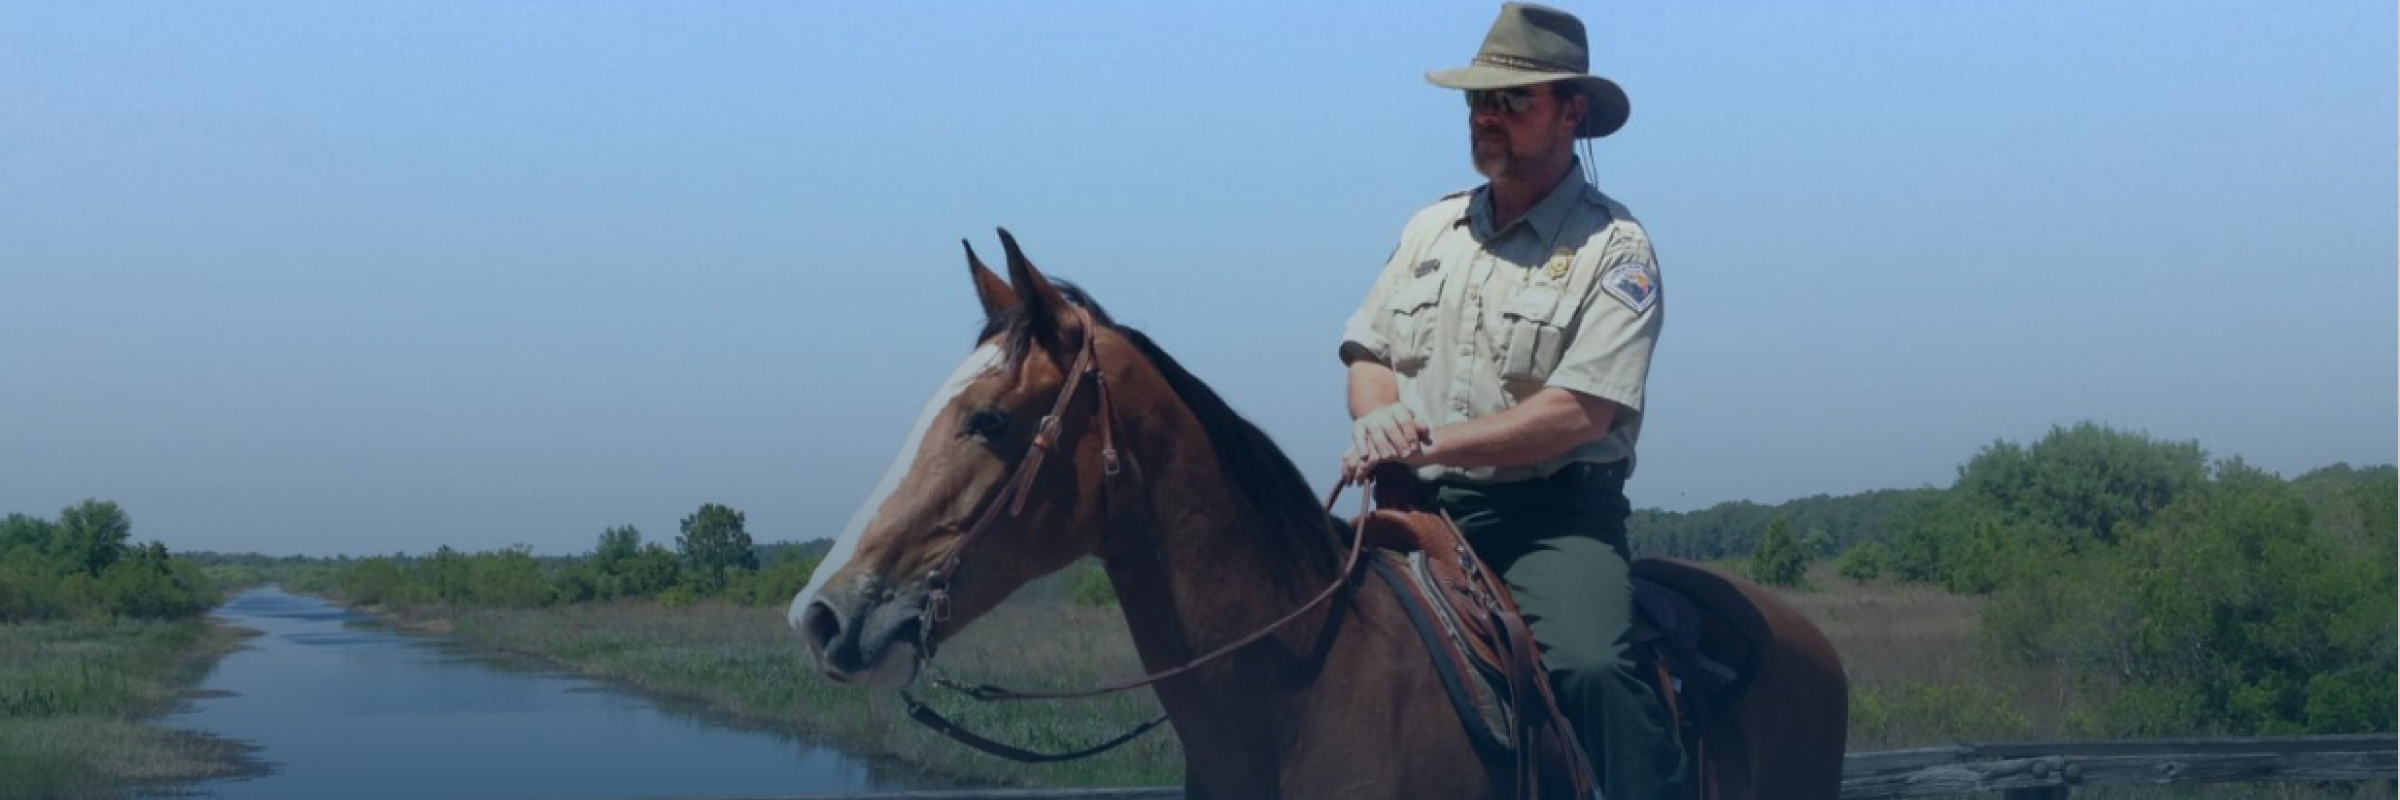 Park Ranger at Lake Kissimmee State Park